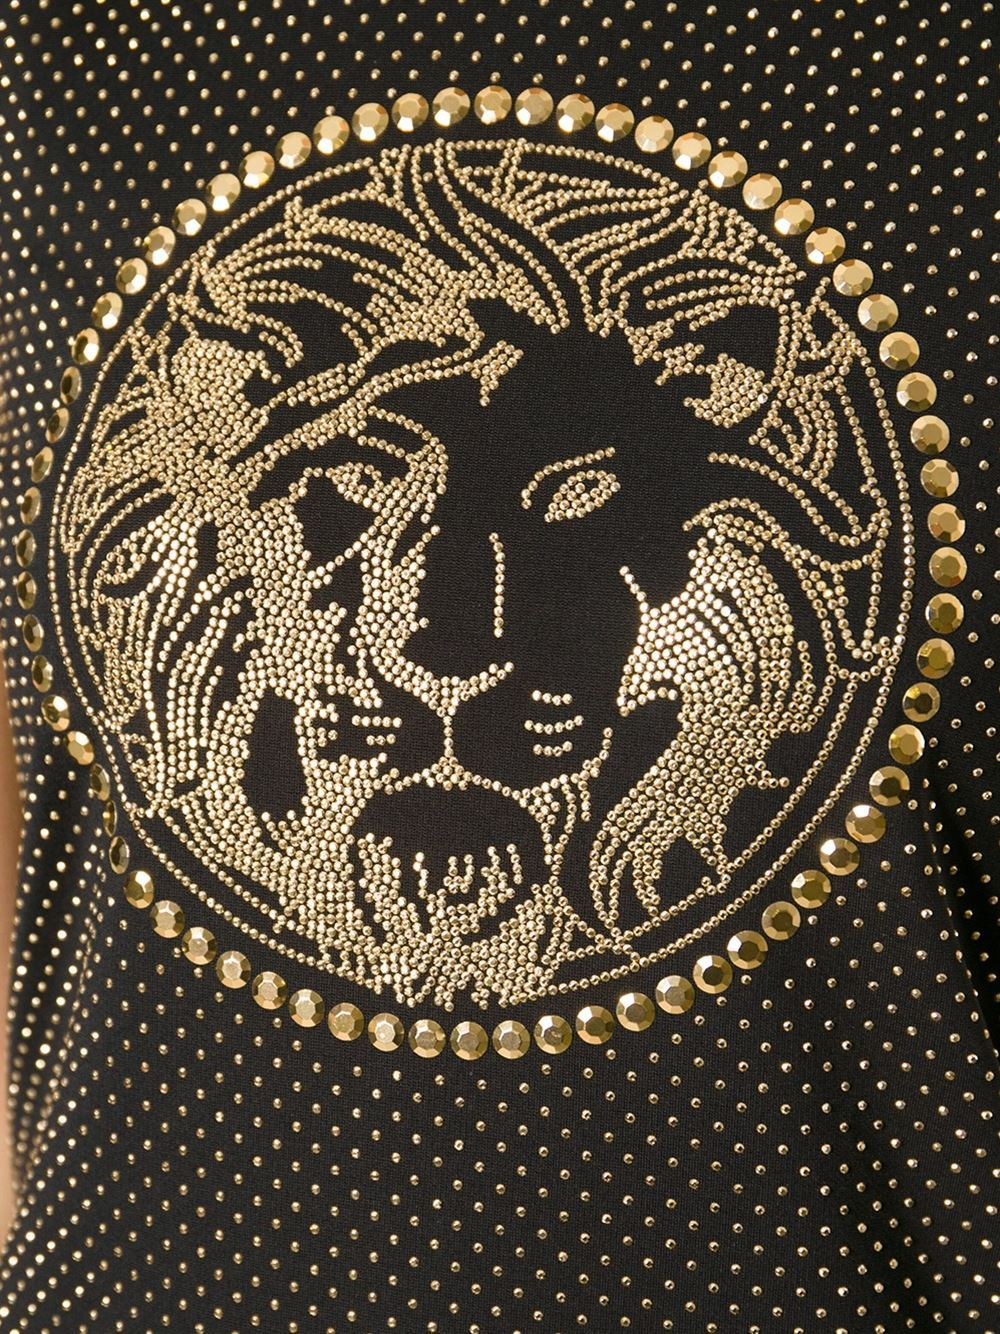 New Versace Versus Black Gold Studded Lionhead Dress In New never worn Condition For Sale In Montgomery, TX